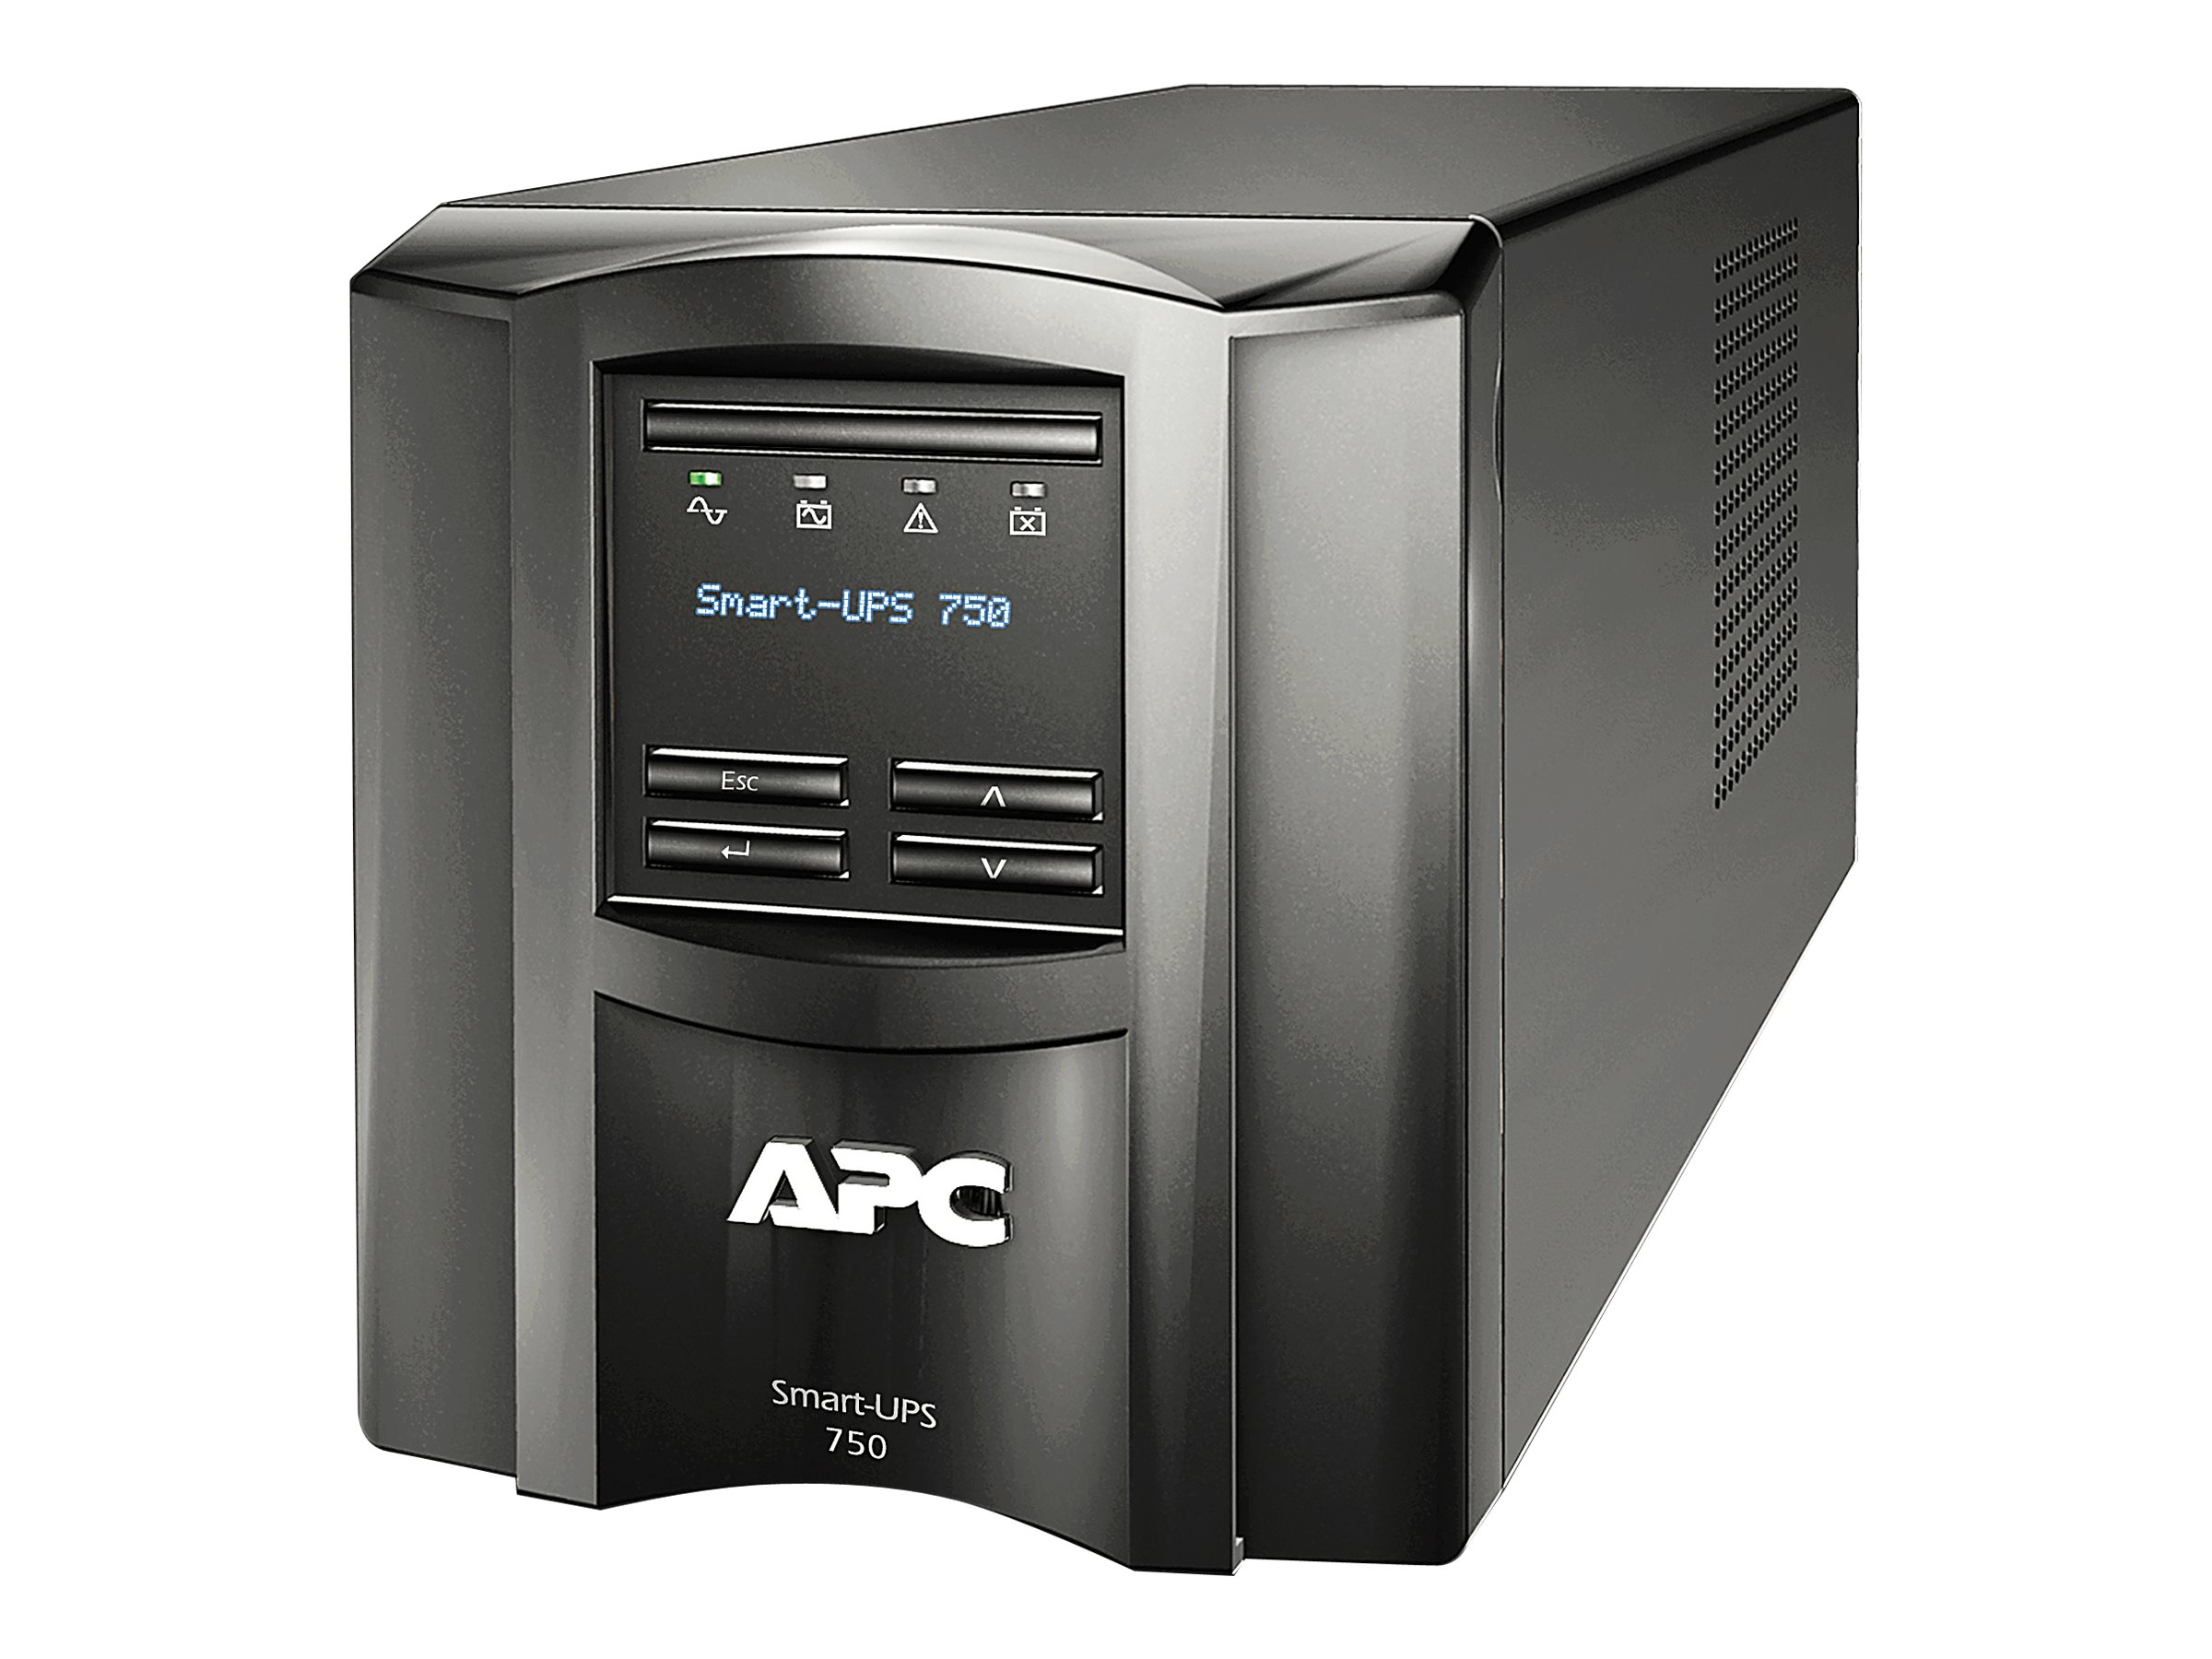 APC Smart-UPS 750VA 500W 120V LCD Tower UPS (6) 5-15R Outlets USB, EXCLUSIVE Buy - Save $12, SMT750, 10334469, Battery Backup/UPS